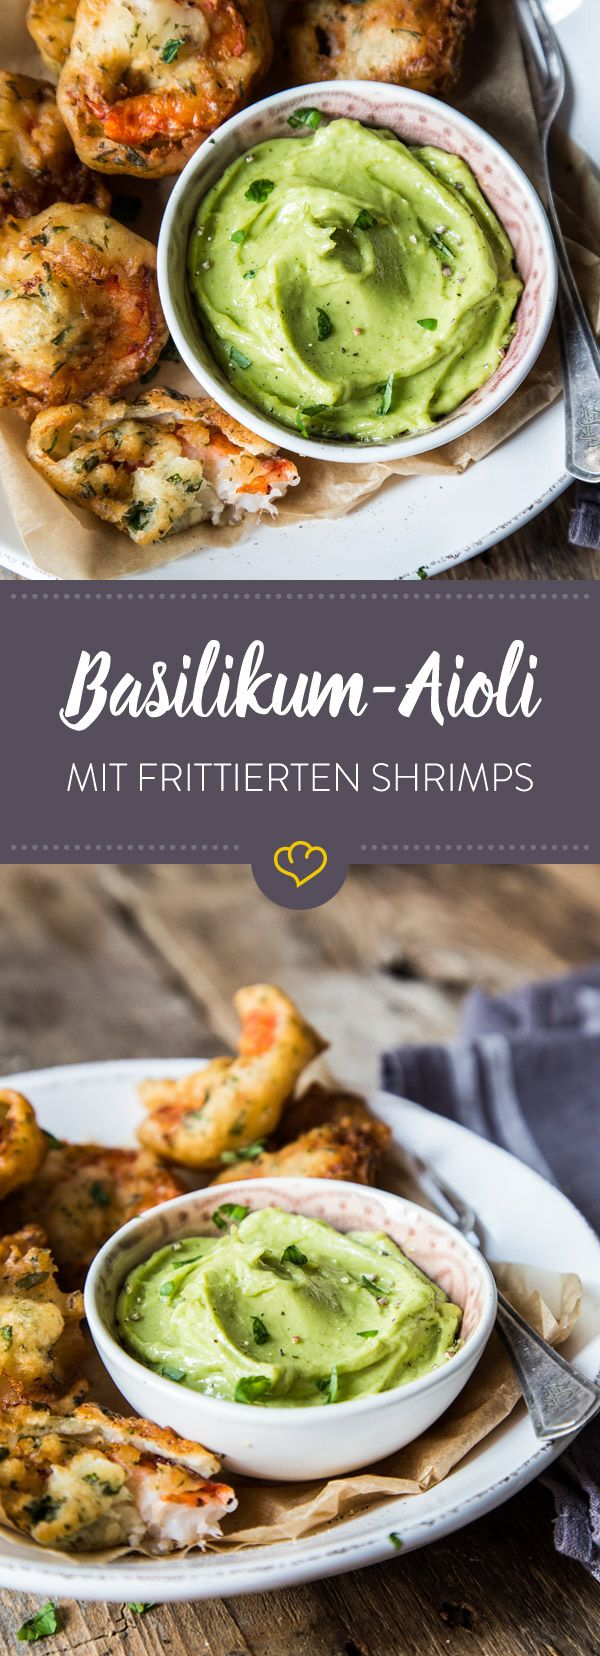 Photo of Basil aioli with fried shrimp